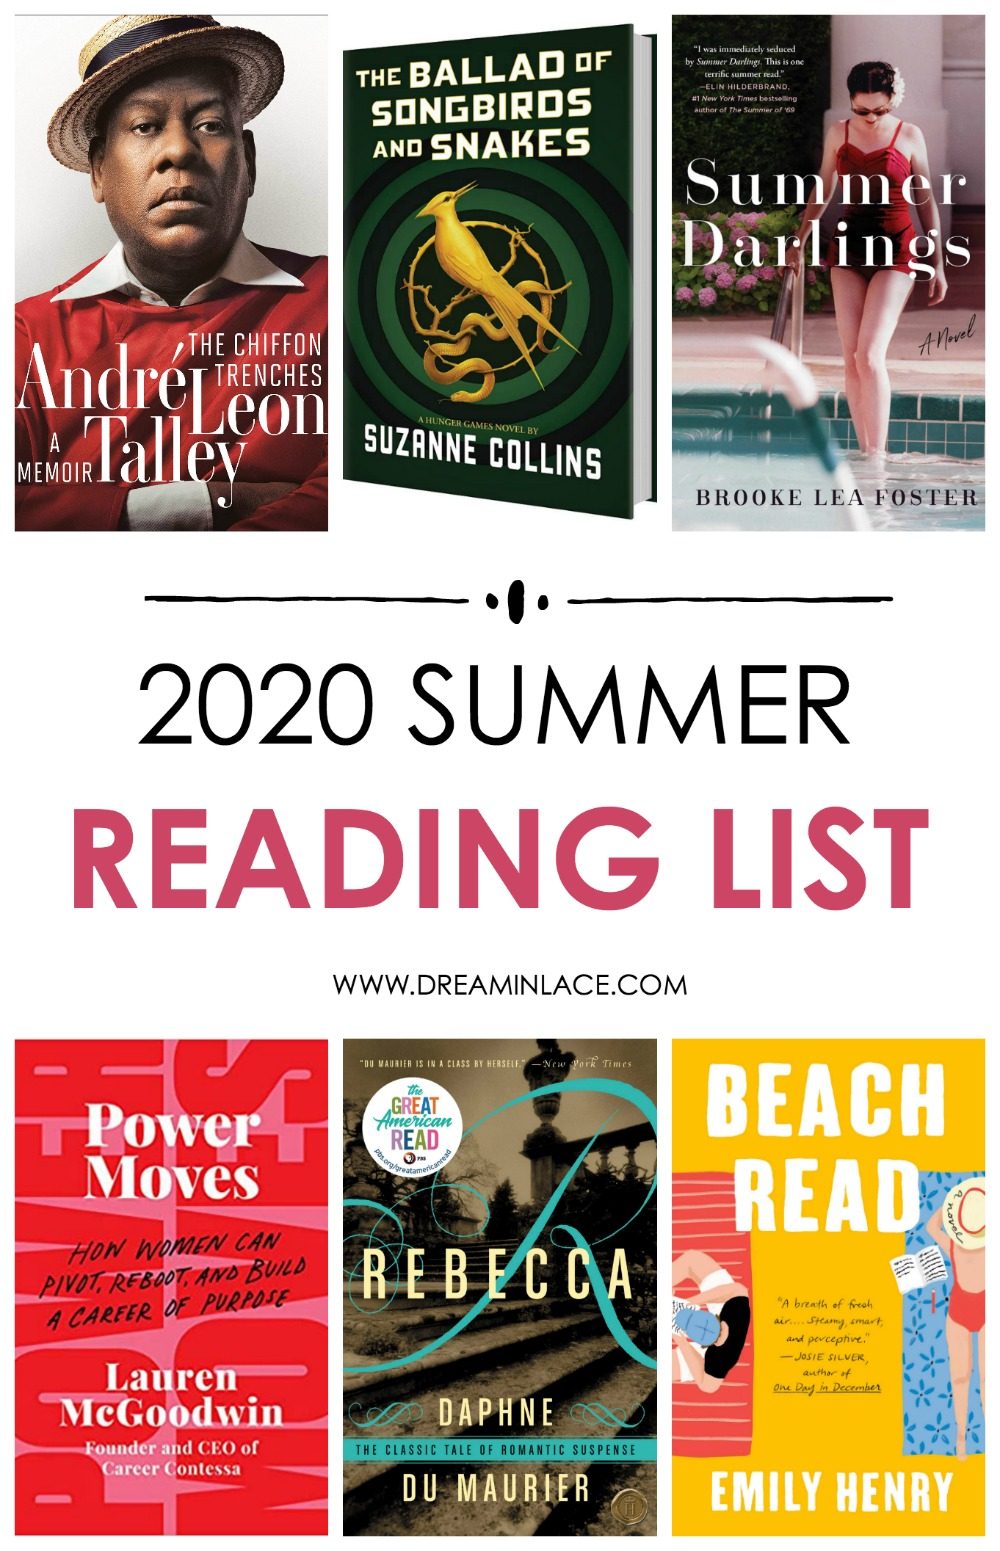 2020 Summer Reading List I Dreaminlace.com